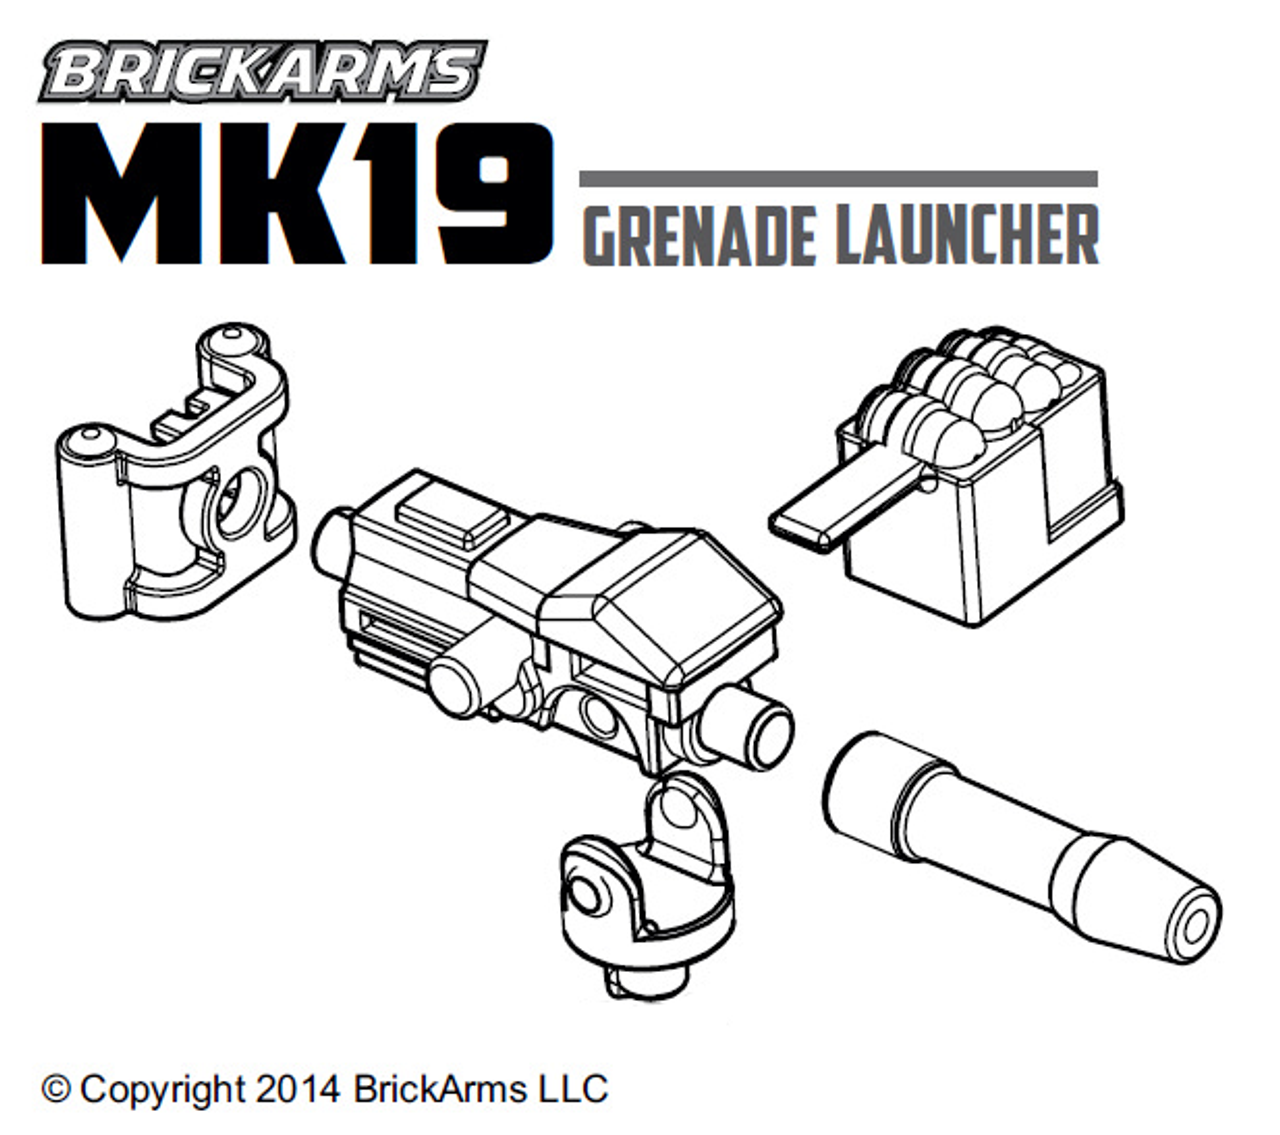 BrickArms Mk19 Grenade Launcher NO TRIPOD